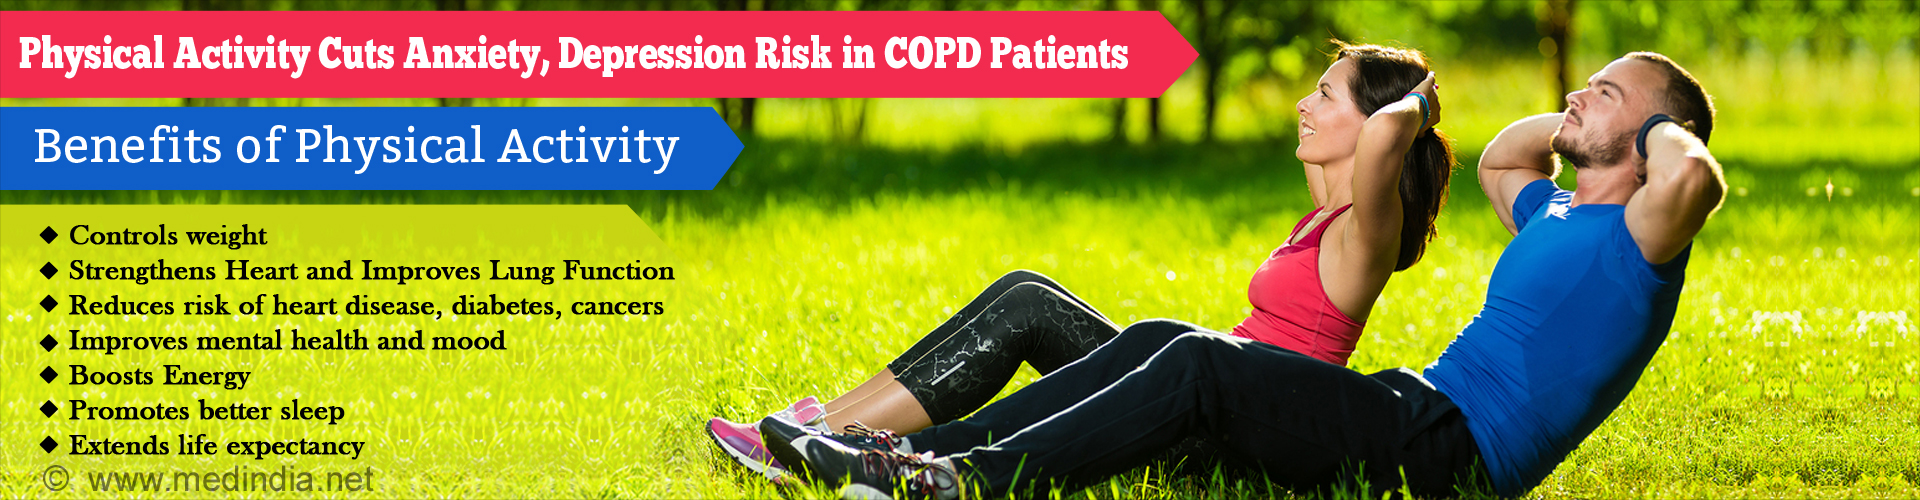 Physical Activity Cuts Anxiety, Depression Risk in COPD Patients